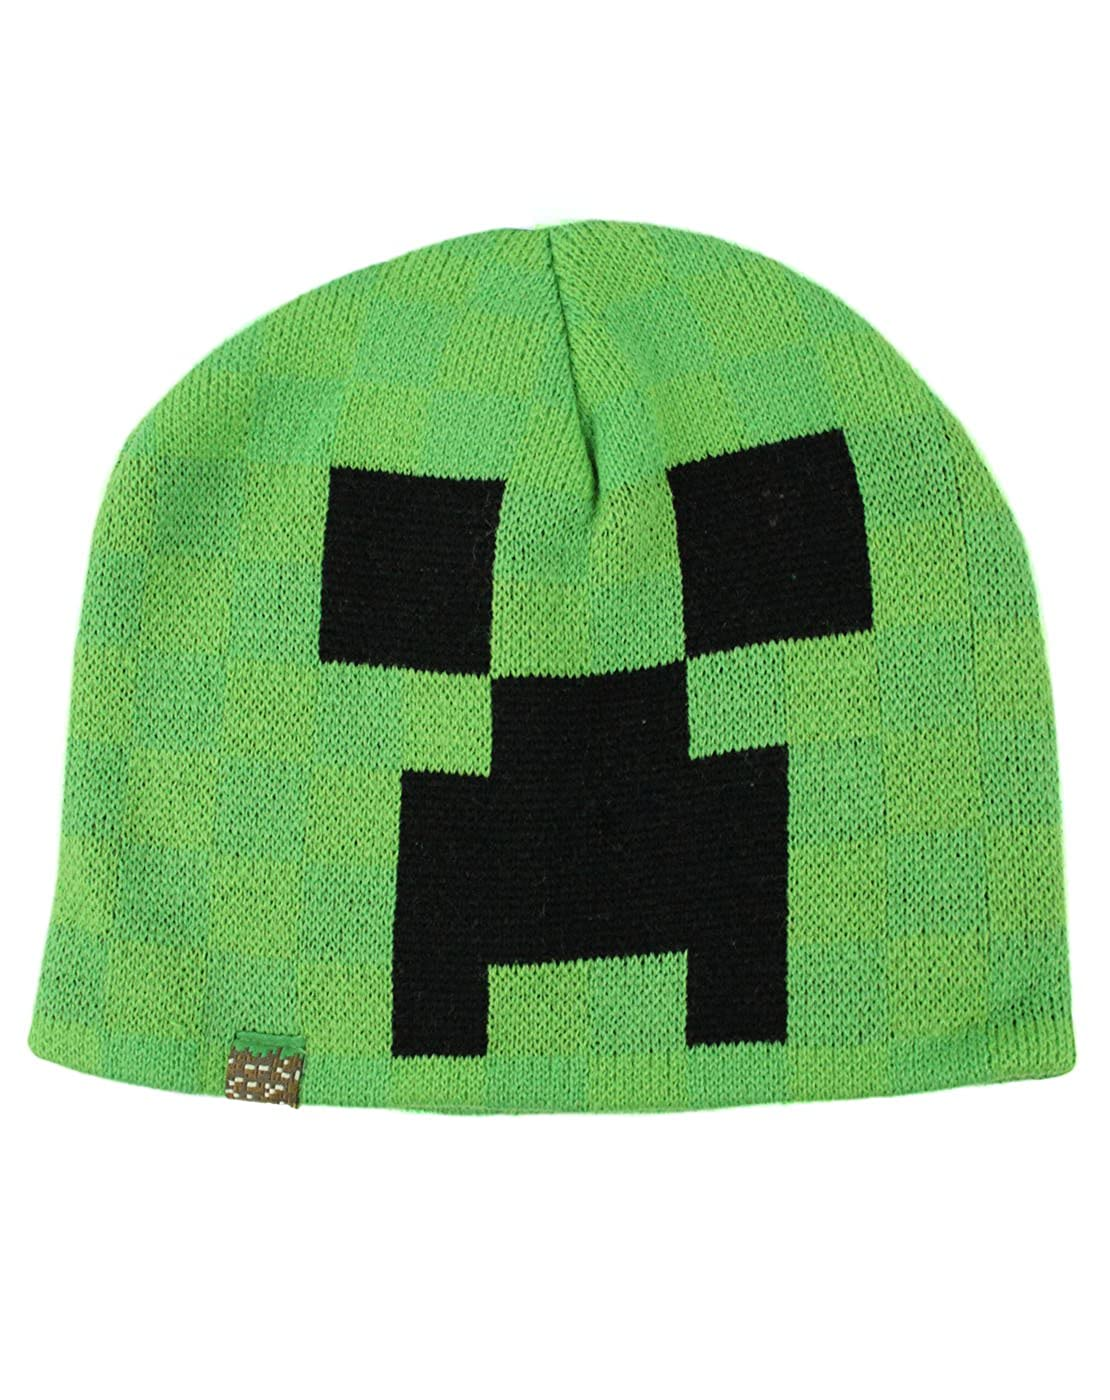 Minecraft Official Creeper Beanie